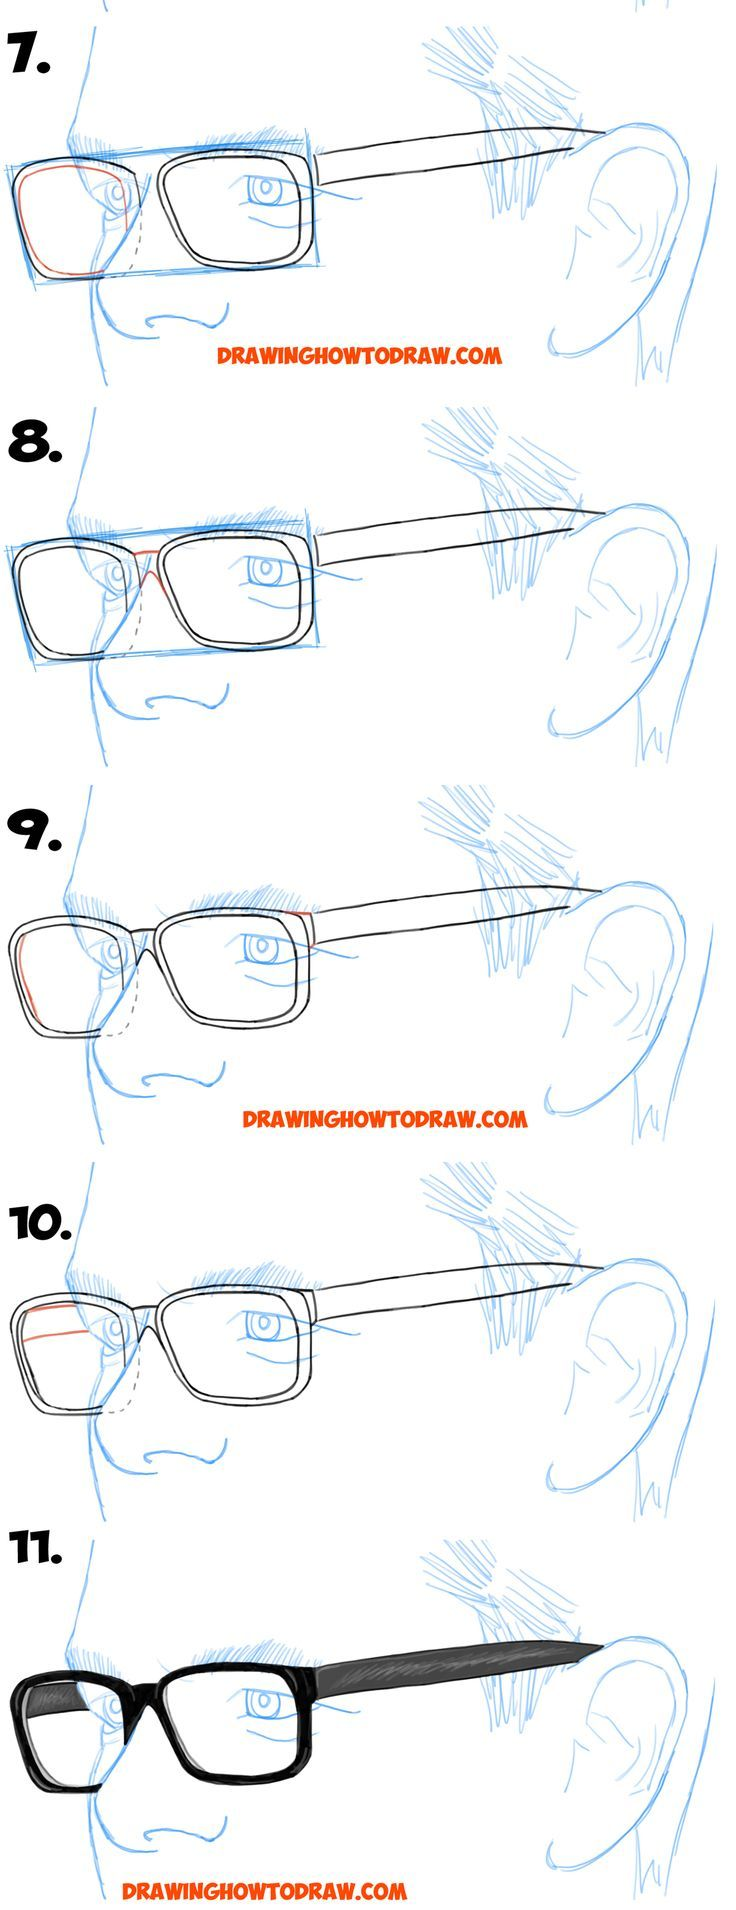 How To Draw Glasses On A Person S Face From All Angles Side Profile Front And Side Views Easy Step By Step Drawing Tutorials How To Draw Step By Step Draw